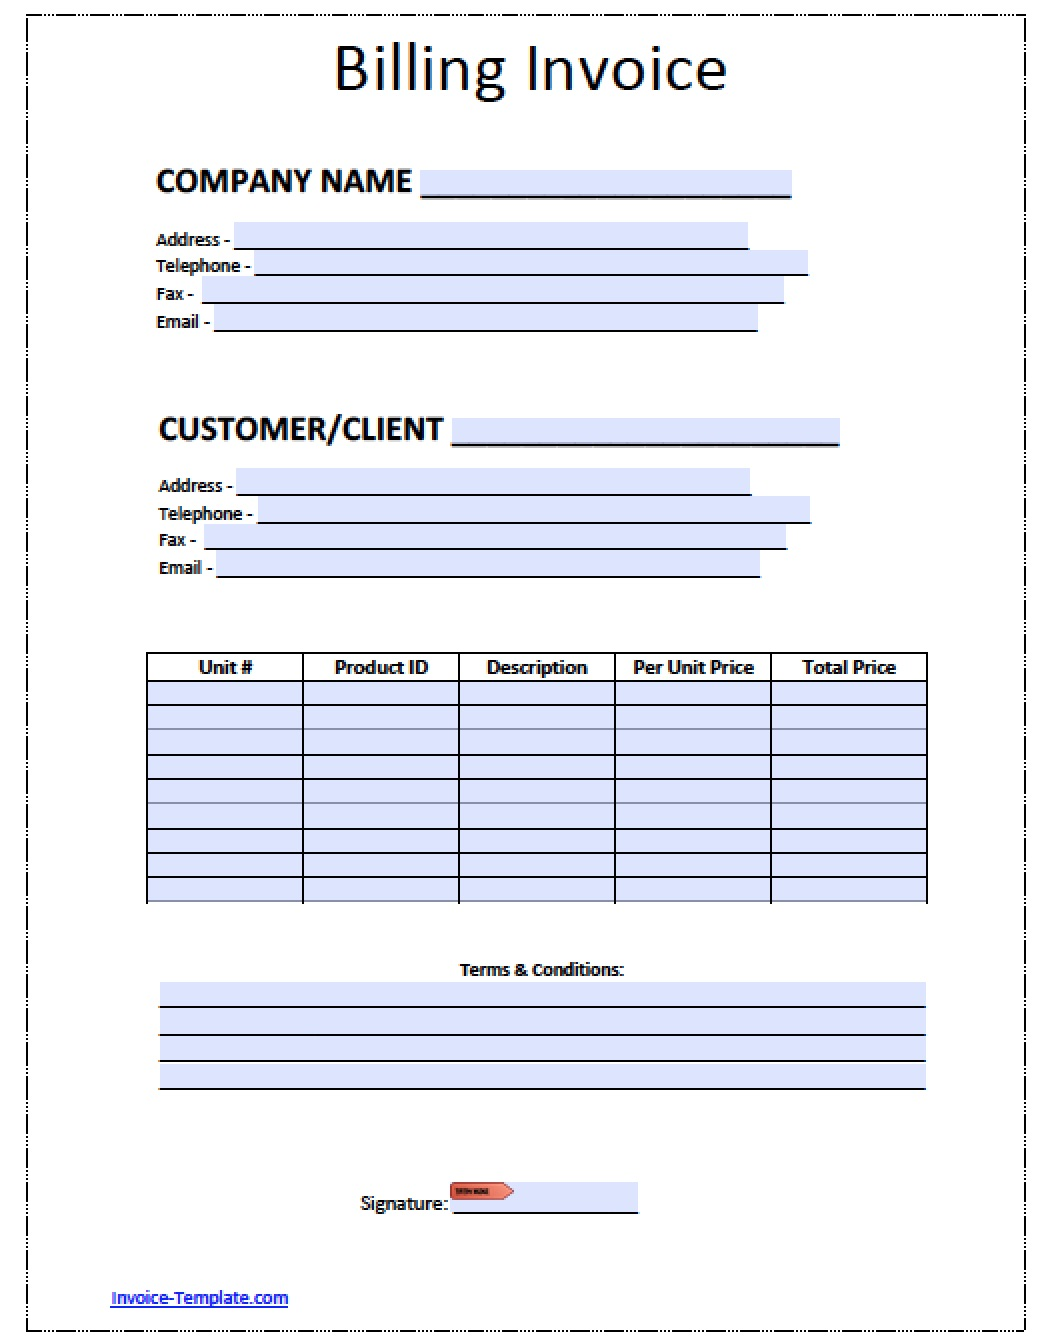 Billing Invoice Template Word Pdf  Customer Invoice Template Excel